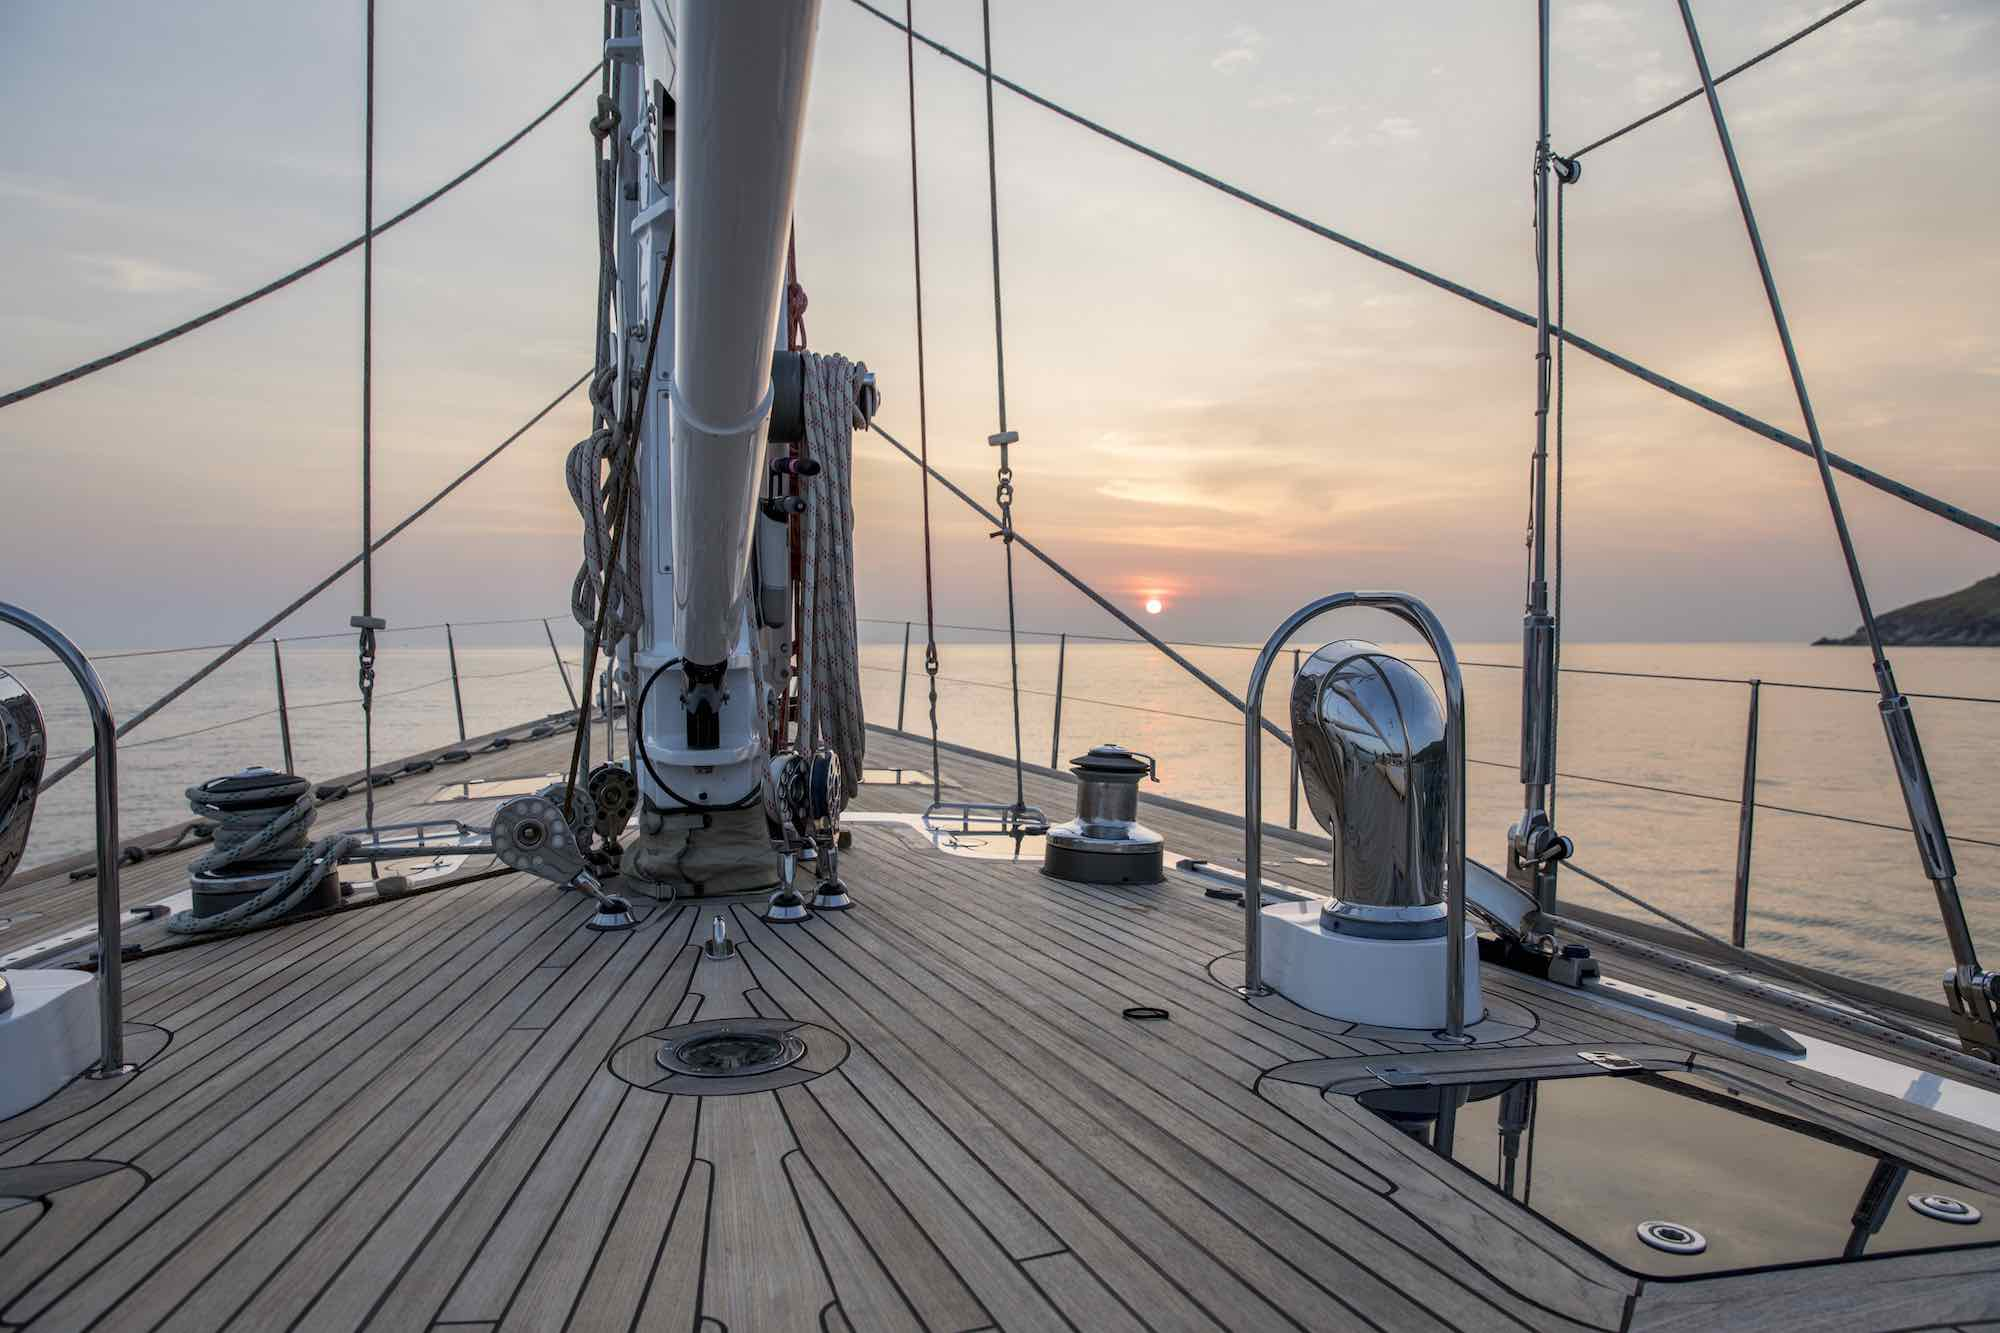 Aphrodite_bow deck sailing toward setting sun 1_XS.jpeg